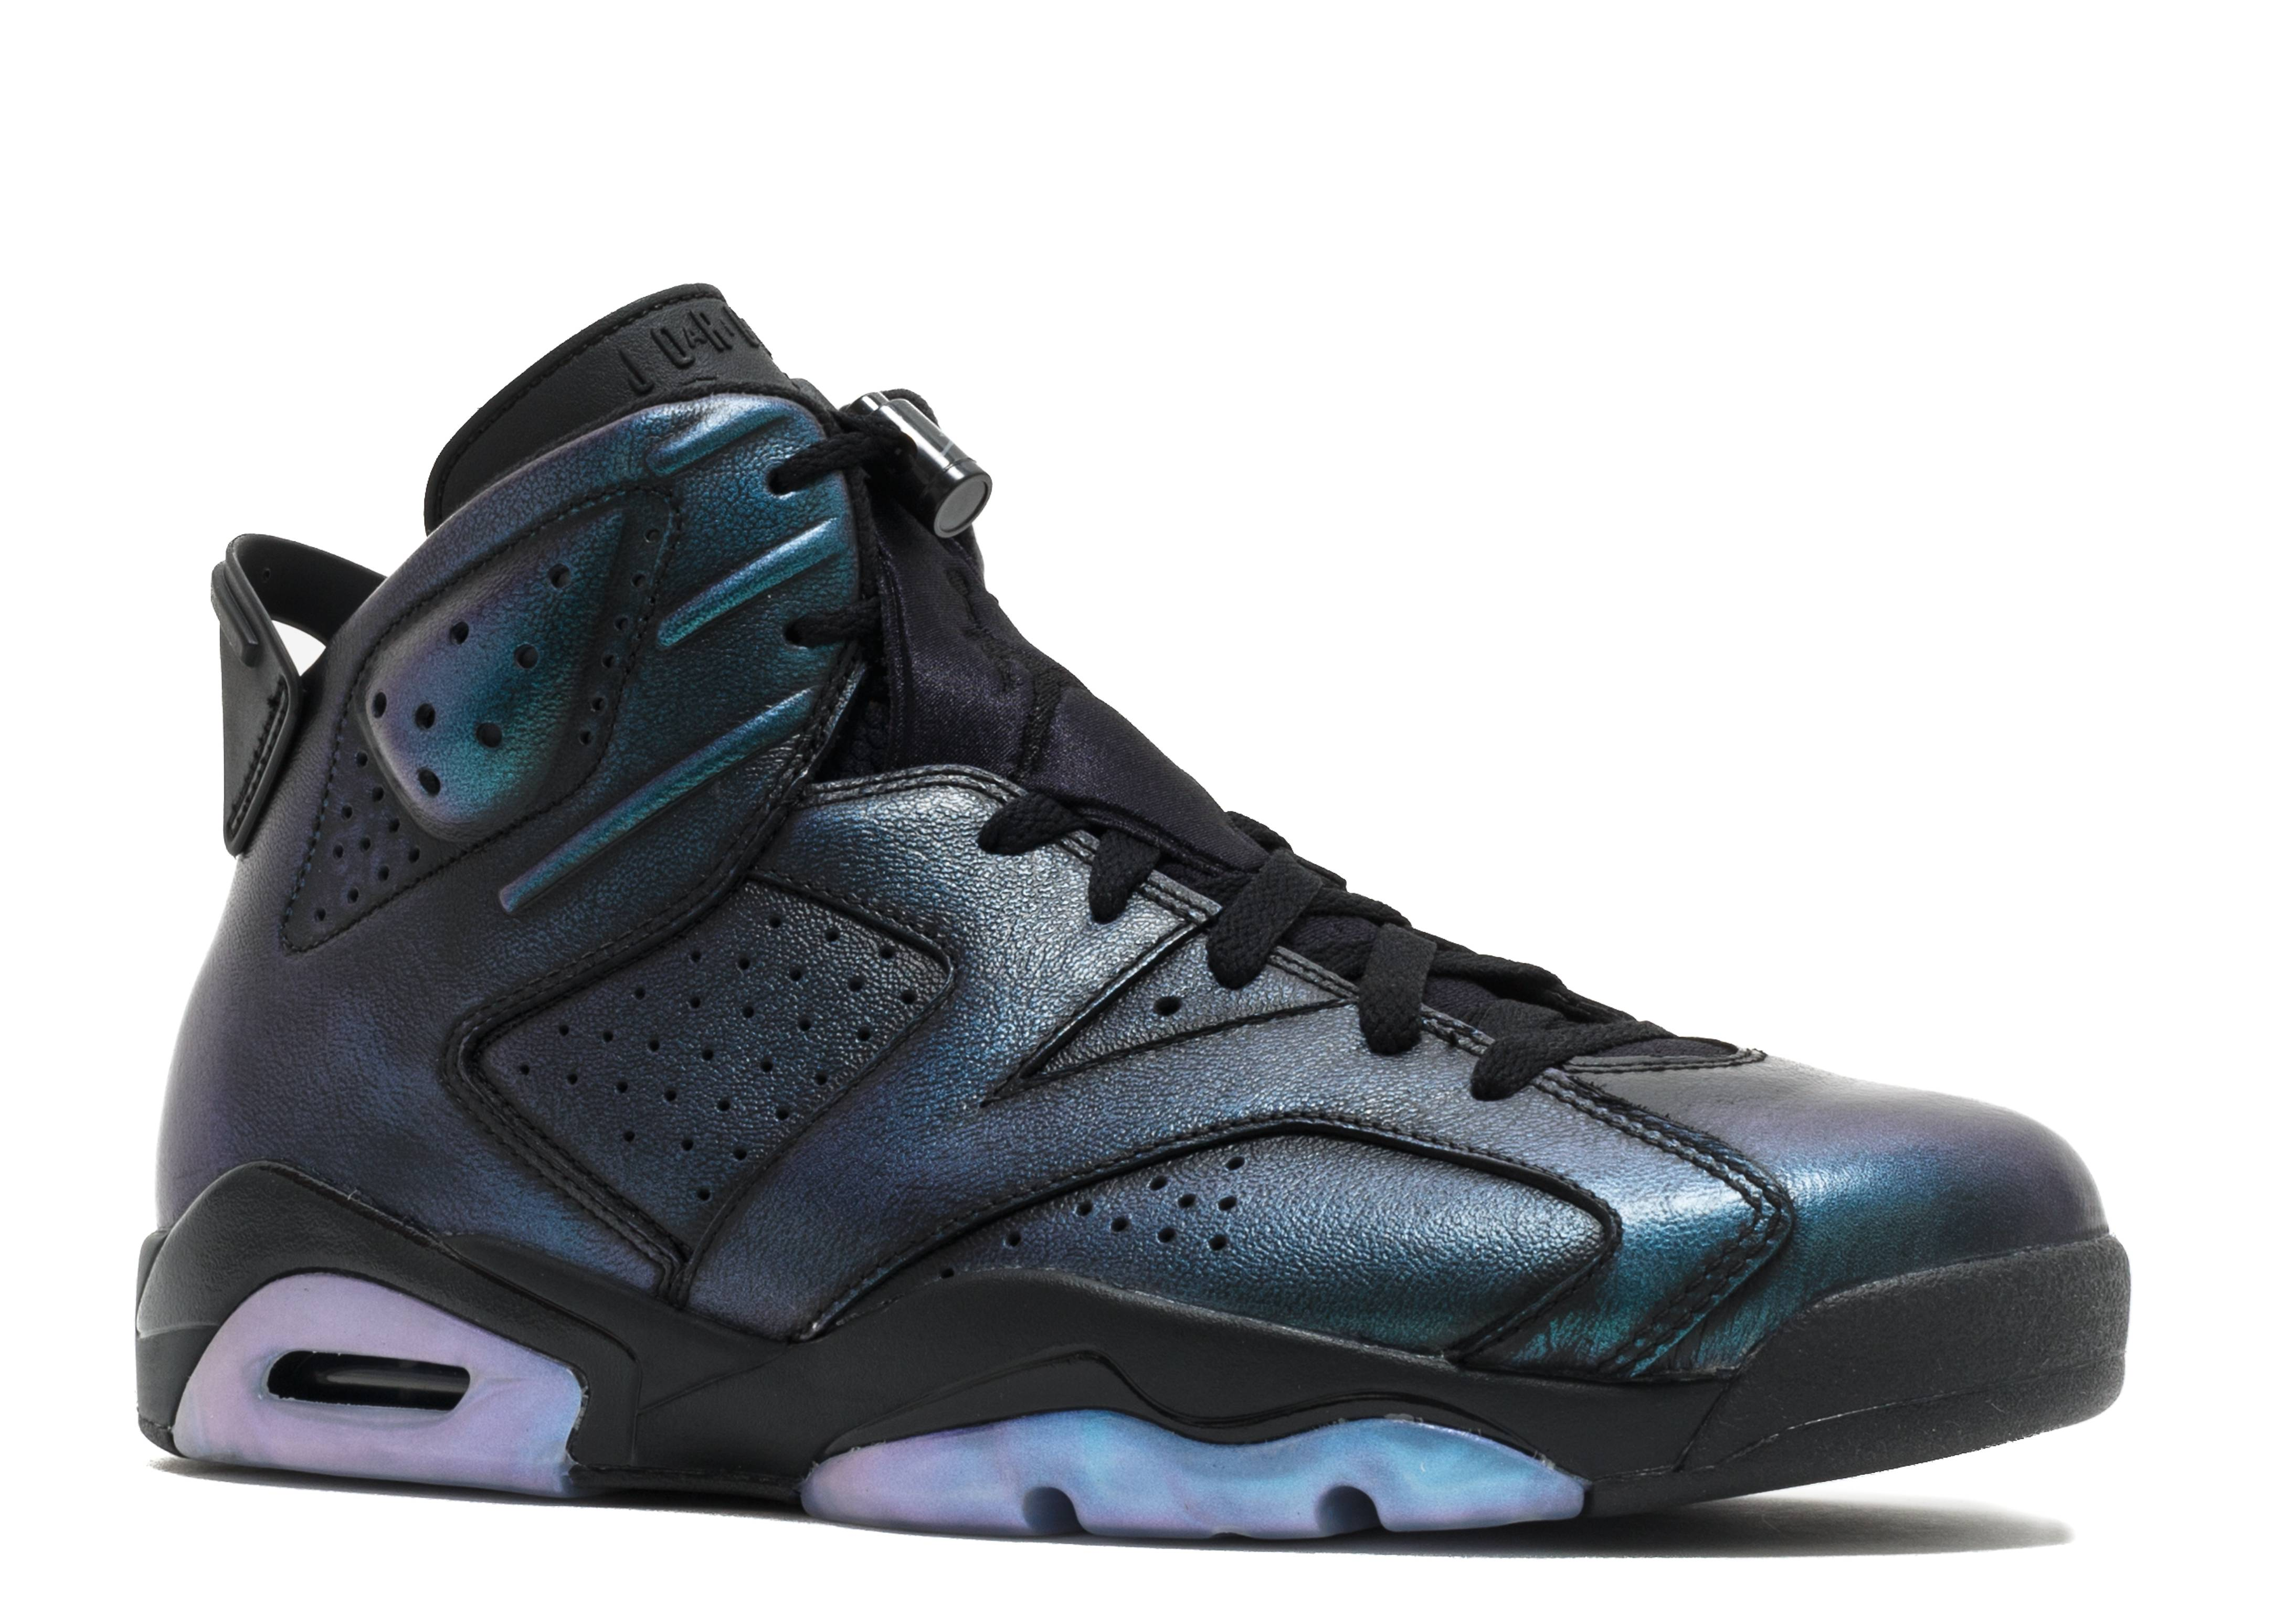 f0030d4c008e ... Air Jordan 6 Retro As Air Jordan 6 Chameleon All-Star Release Date Sole  384664-101 ...